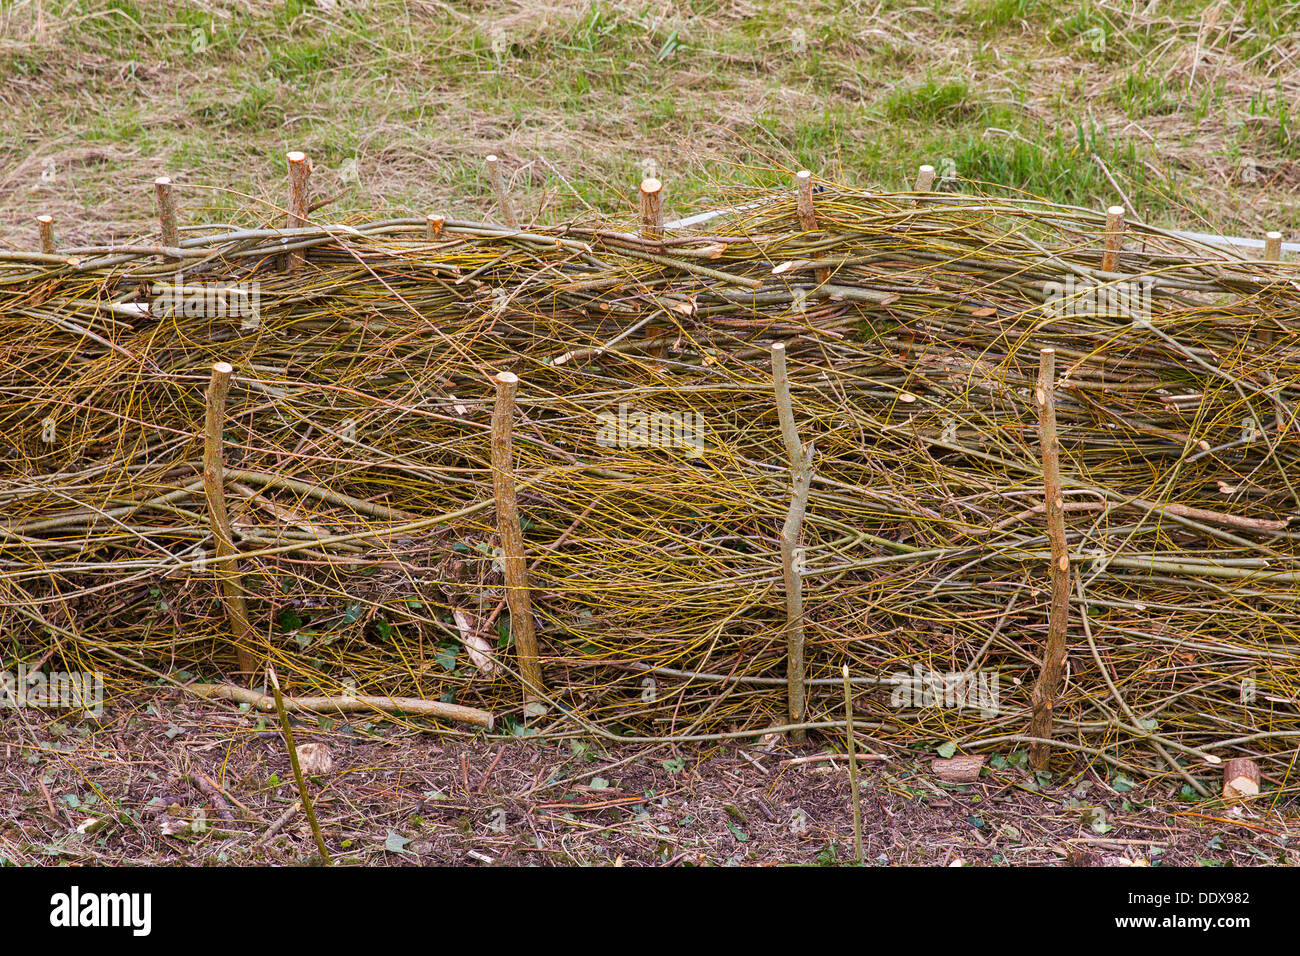 fence panels hurdles thin branches withies willow - Stock Image